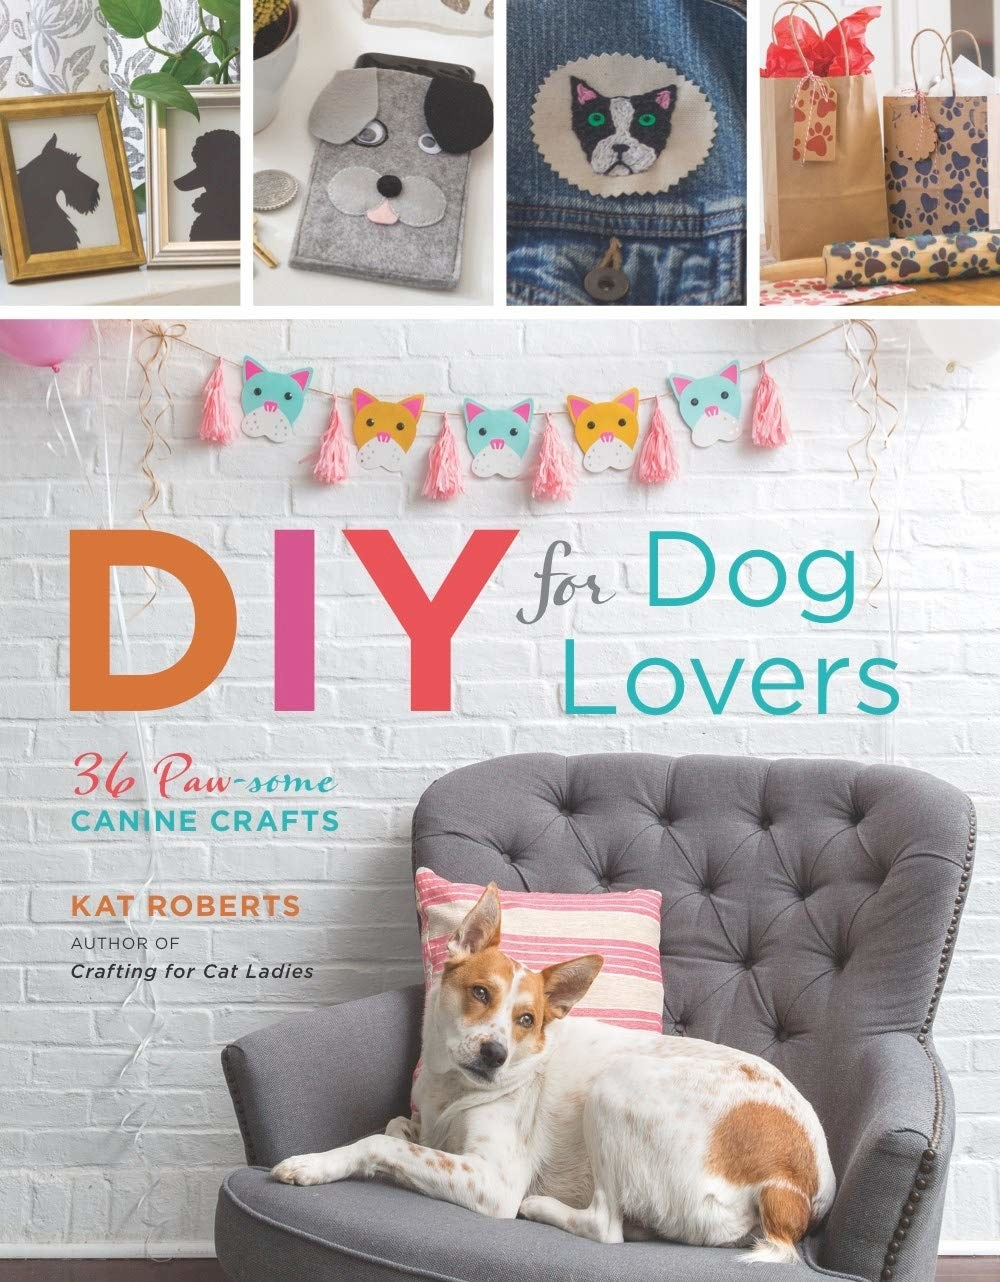 Front cover of book with a dog sitting on a chair and pictures of examples of DIY projects